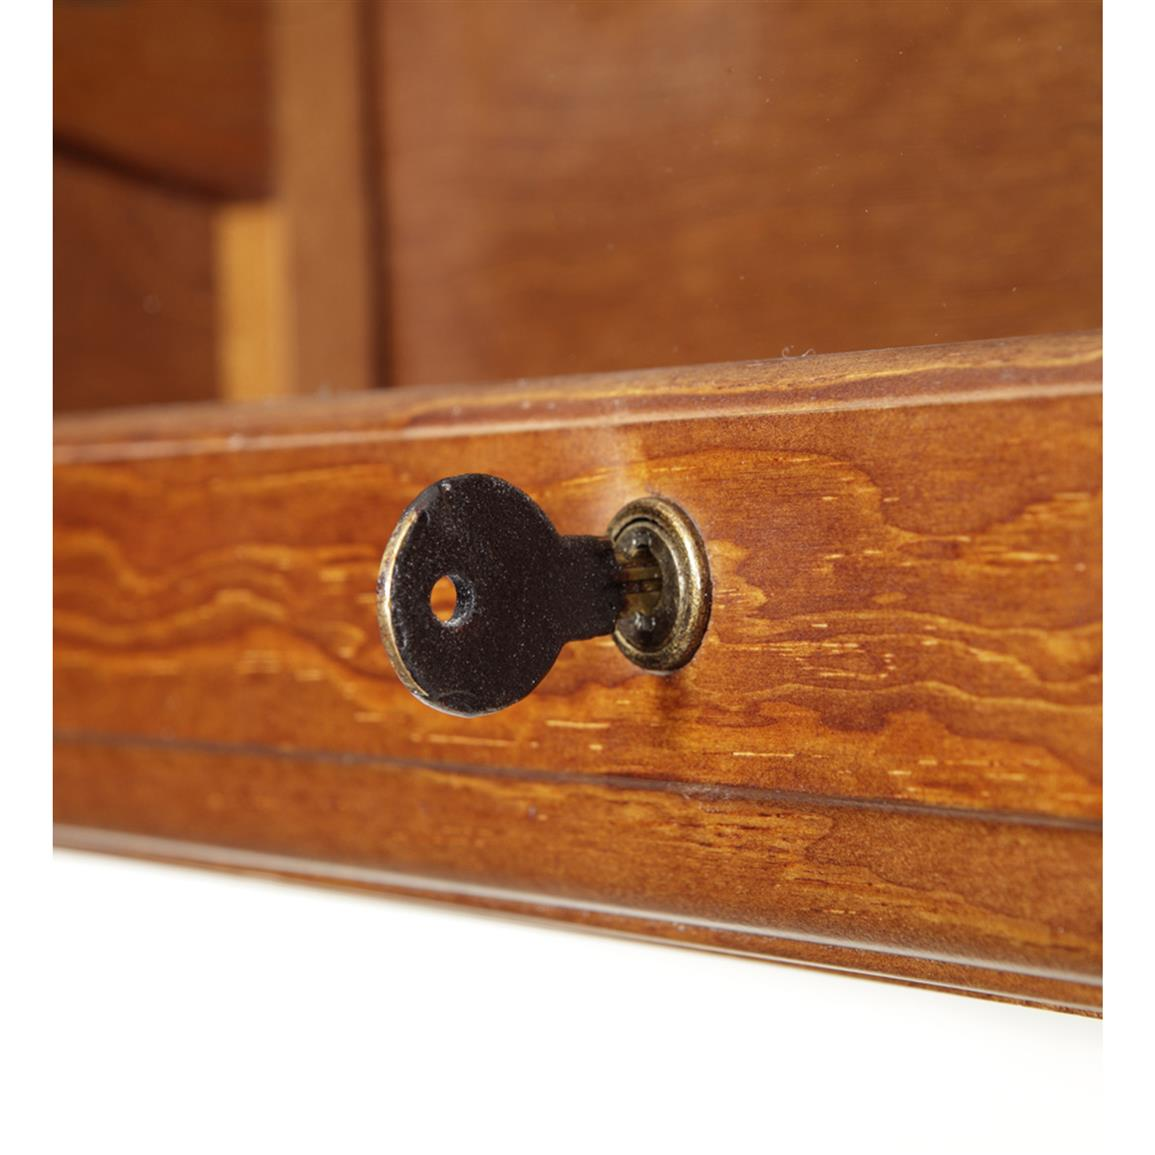 Fully-locking cabinet keeps out curious hands